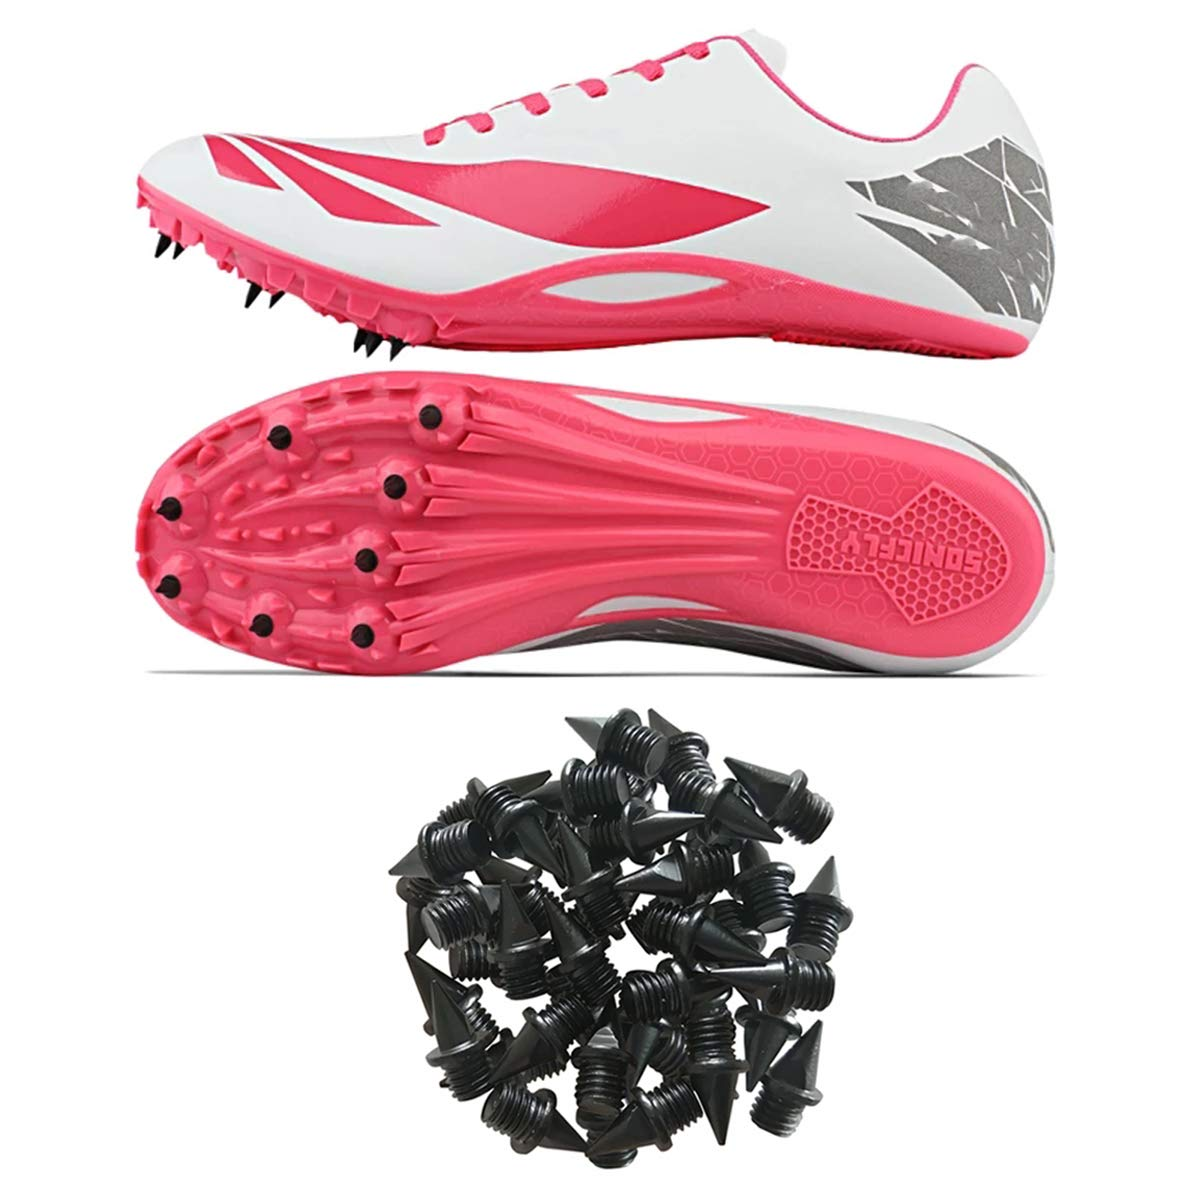 MAOMBO 1//4 Inch 6.5MM Ultra-Light Alloy Track and Spikes for Track Shoes